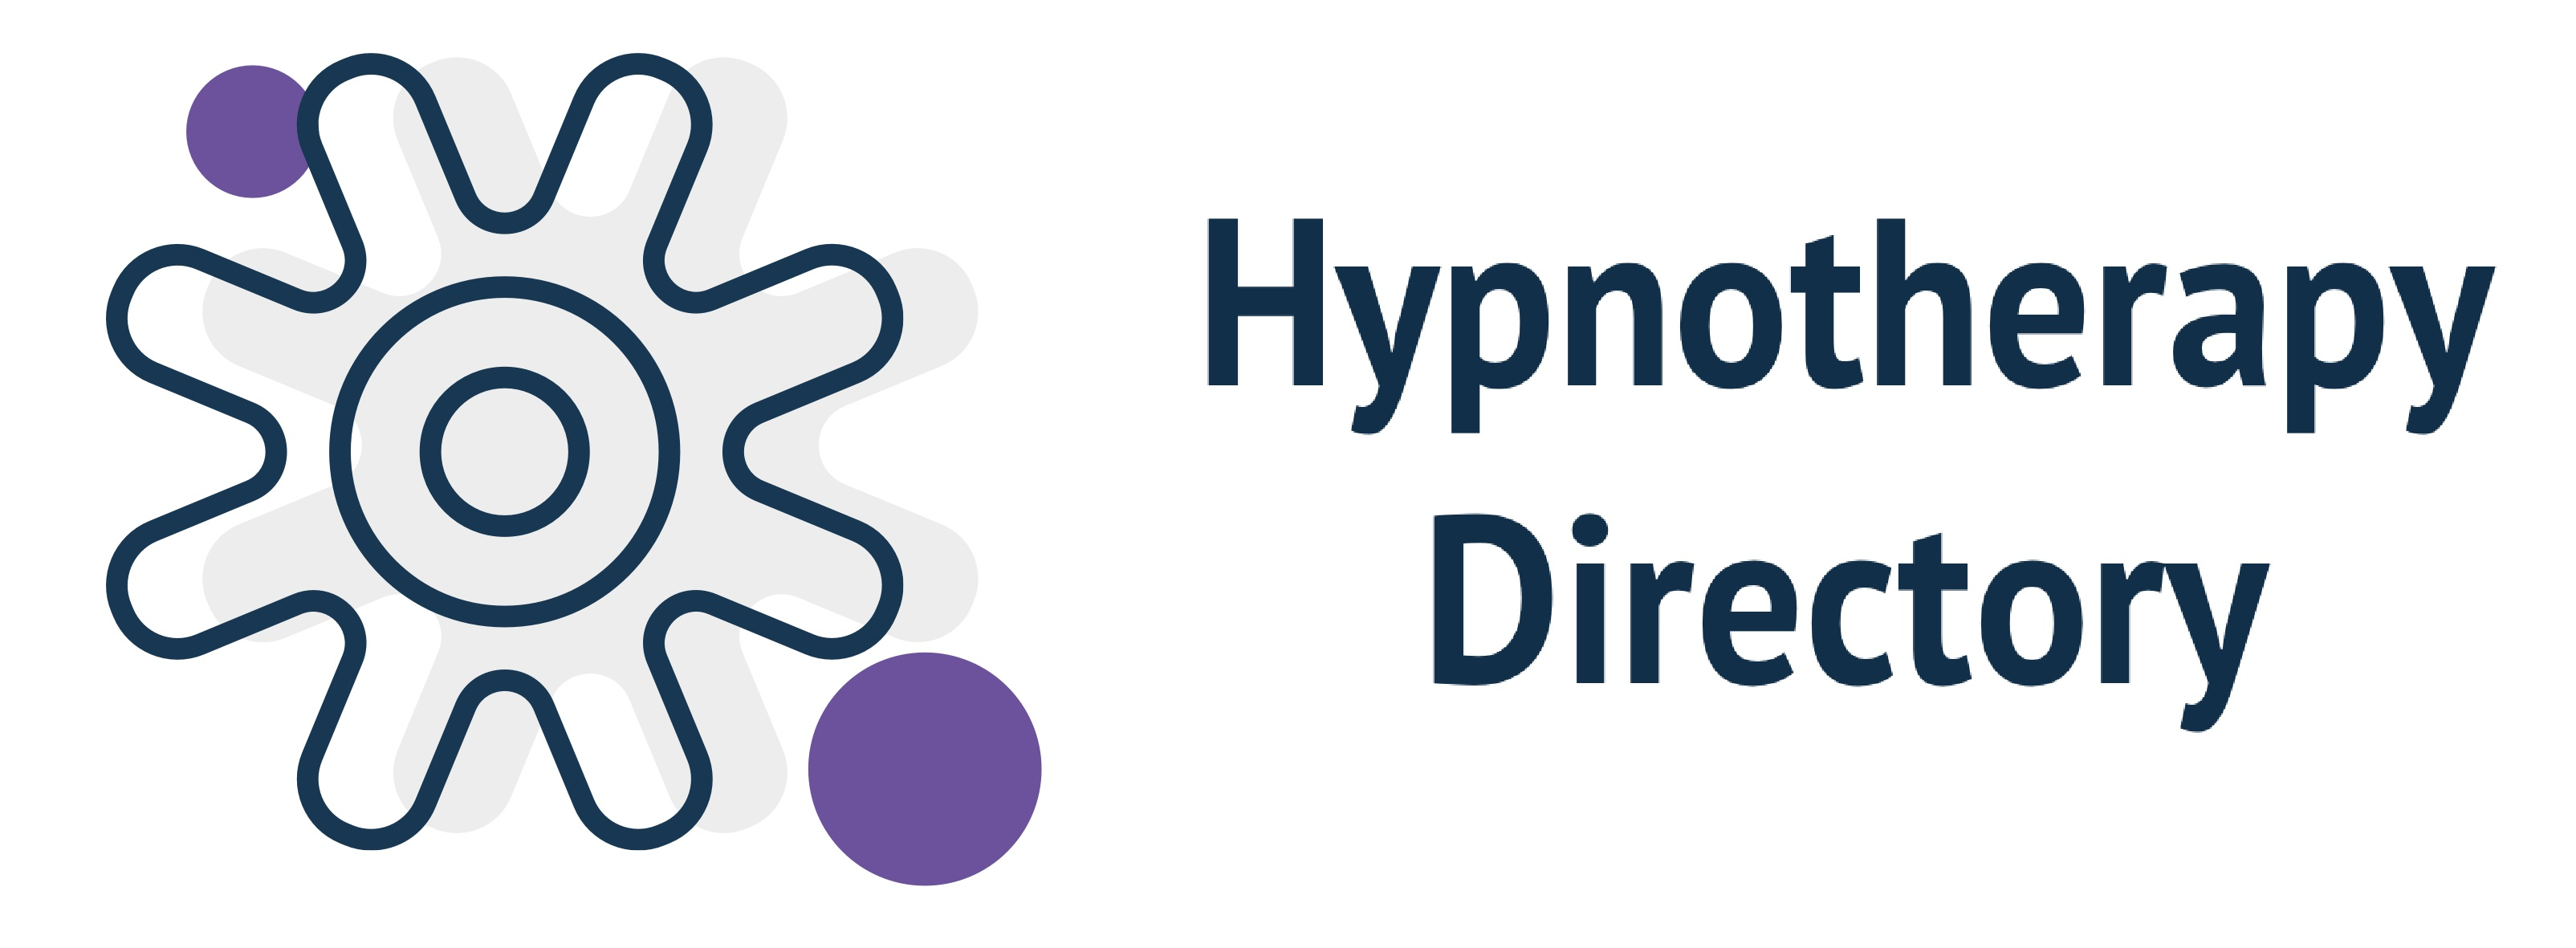 Hypnotherapy Directory